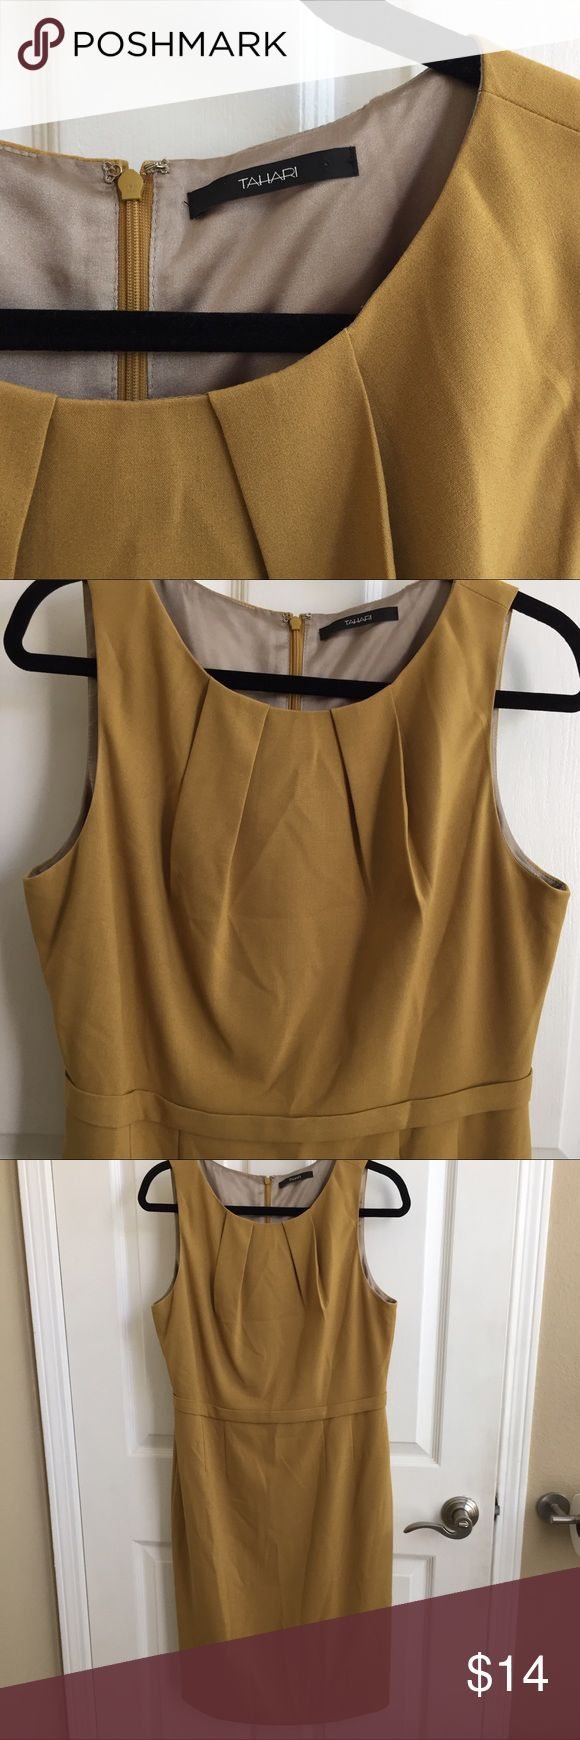 """Golden yellow Tahari dress Beautiful, fully lined career or special occasion dress in an elegant goldenrod /mustard color.  Can be used for the office or as a cocktail dress. Tailored details throughout, a hidden zipper closure and a self-belted waist make this dress ultra figure flattering. 39.5"""" from shoulder to hem. Chest measures 20"""" across (armpit to arm pit). Waist measures 17"""" across. Tahari Dresses Midi"""